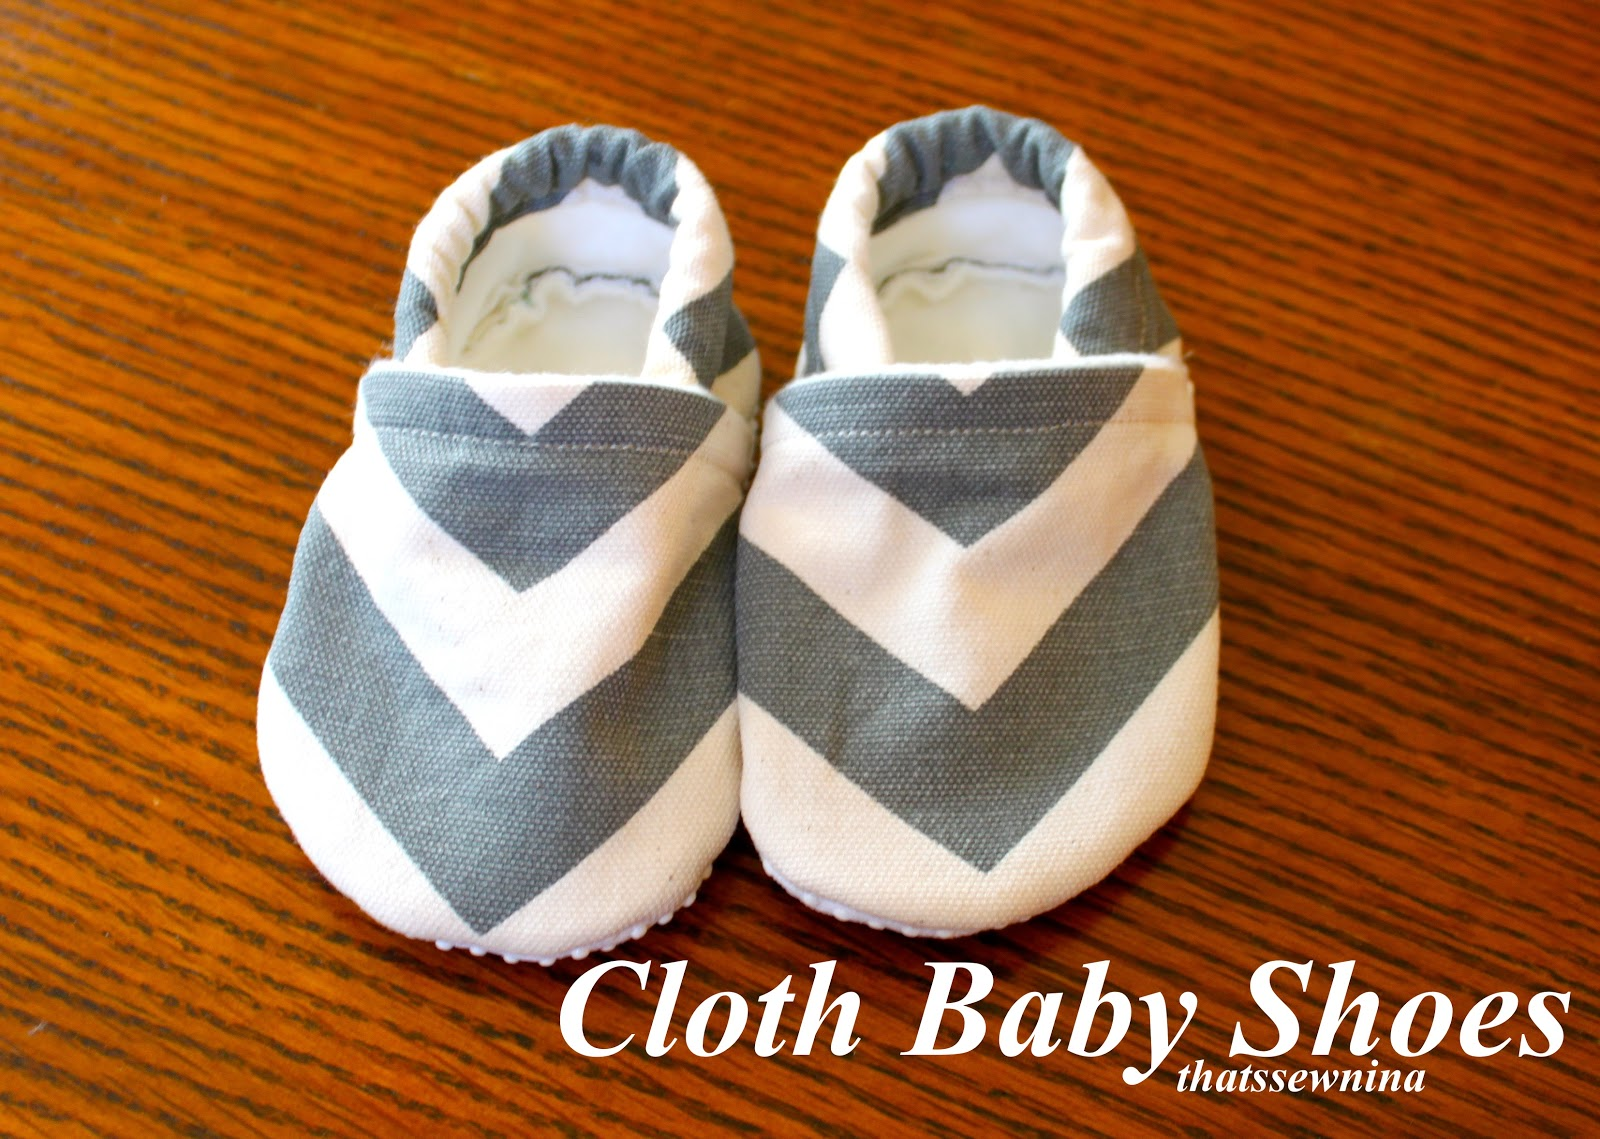 thatssewnina: My favorite DIY baby gift (part 3): Cloth Baby Shoes